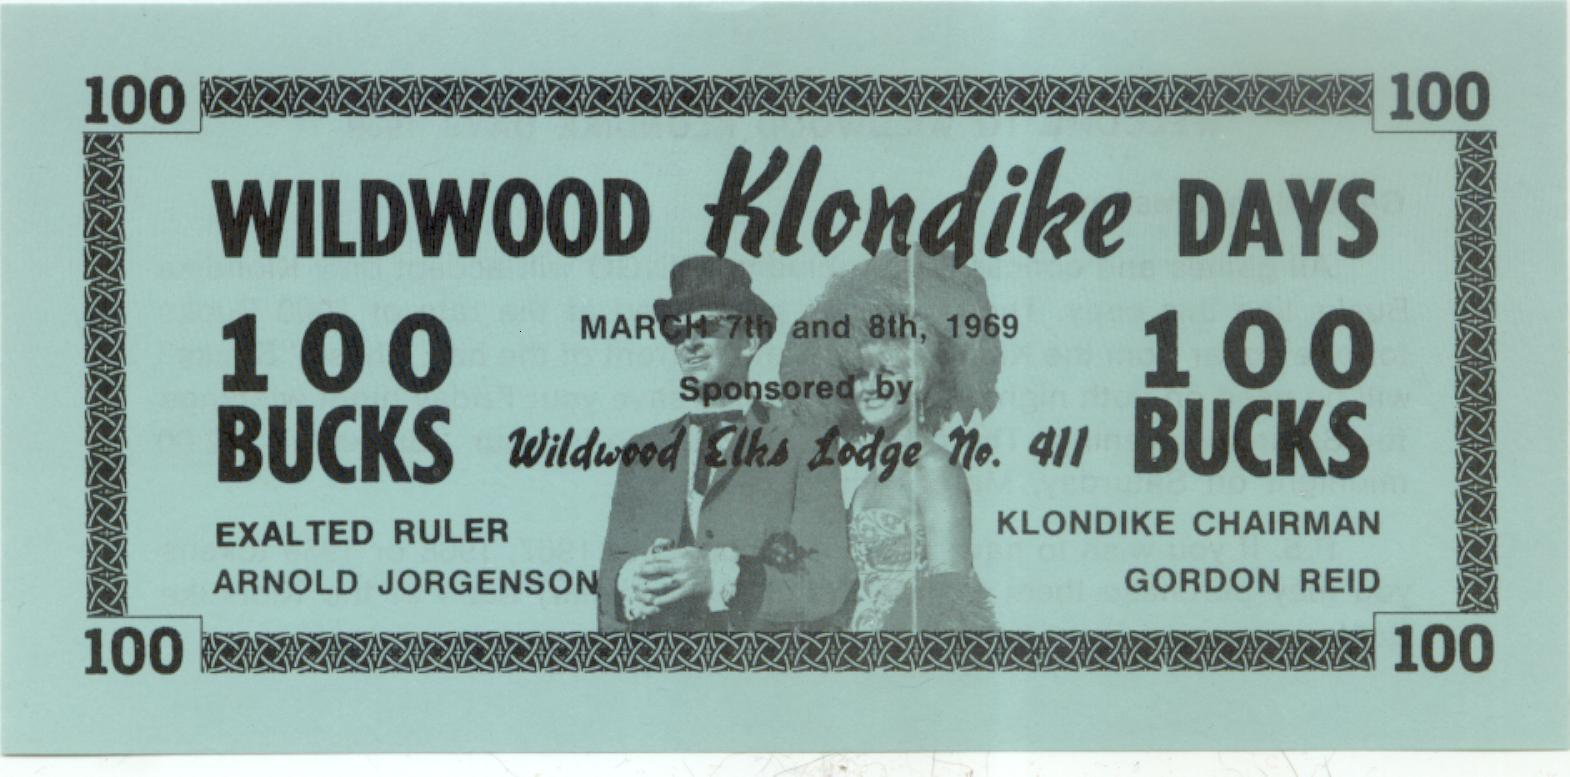 1969 Wildwood Alberta 100 bucks